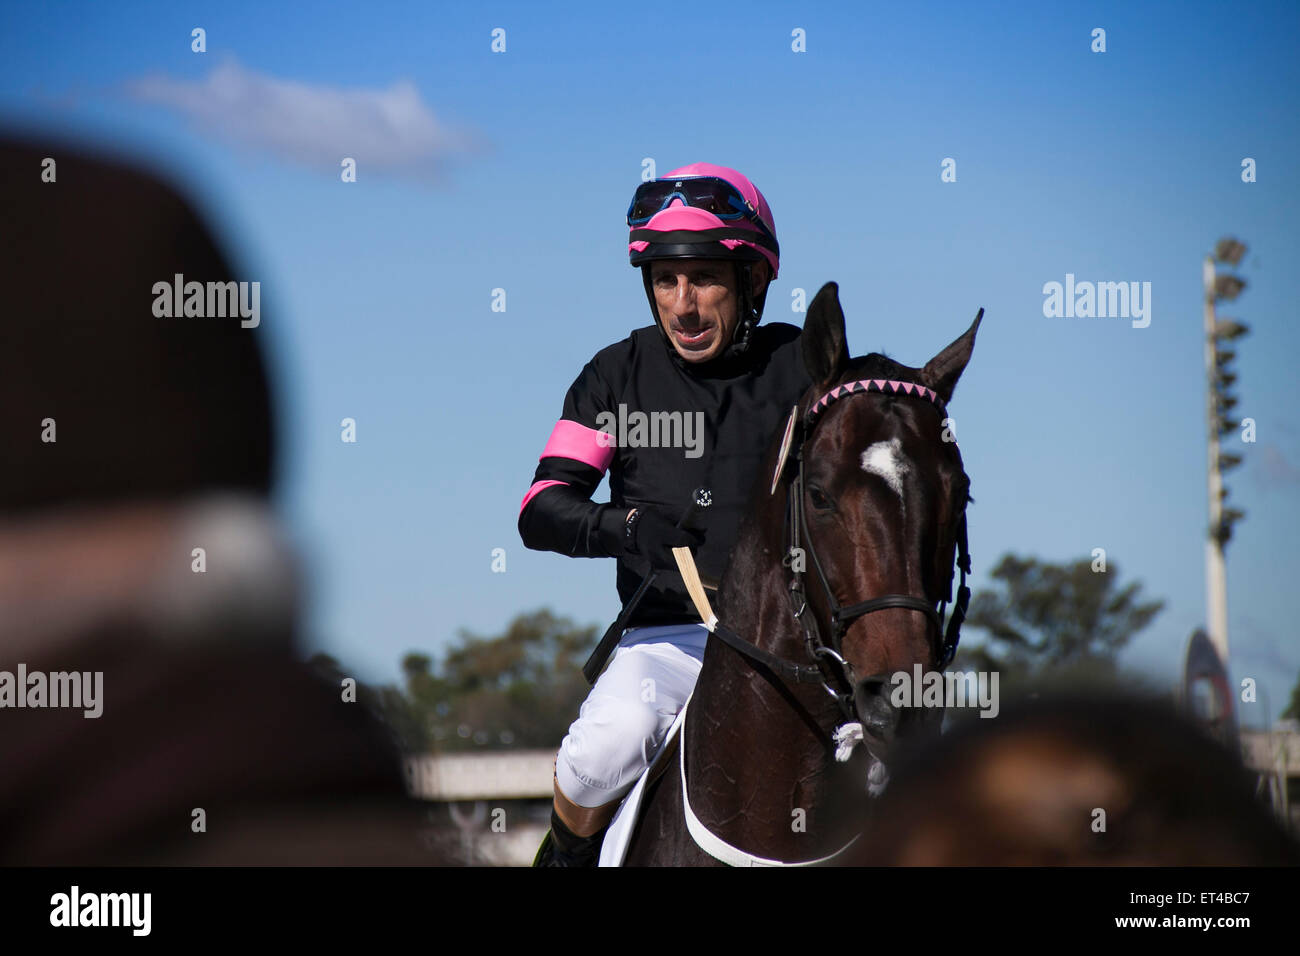 Horseman. Sad look.  Grimace. Loser, disappointment, sunny day, Jockey, look, Horse. Front - Stock Image